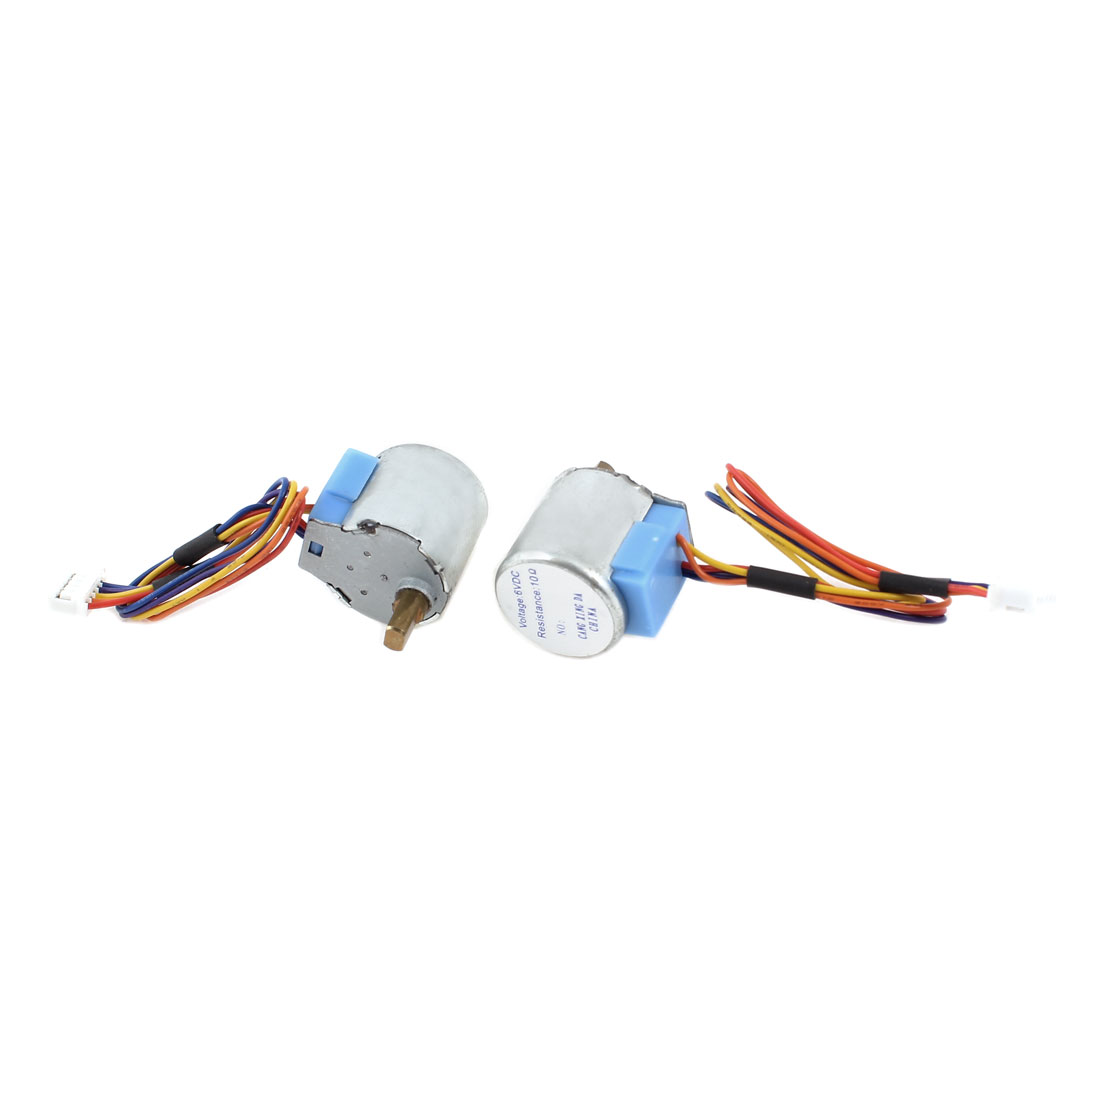 2 Pcs DC 6V 4.95x10mm Shaft 1000PRM 4-Phase 5-Wire Reducing Stepping Stepper Motor